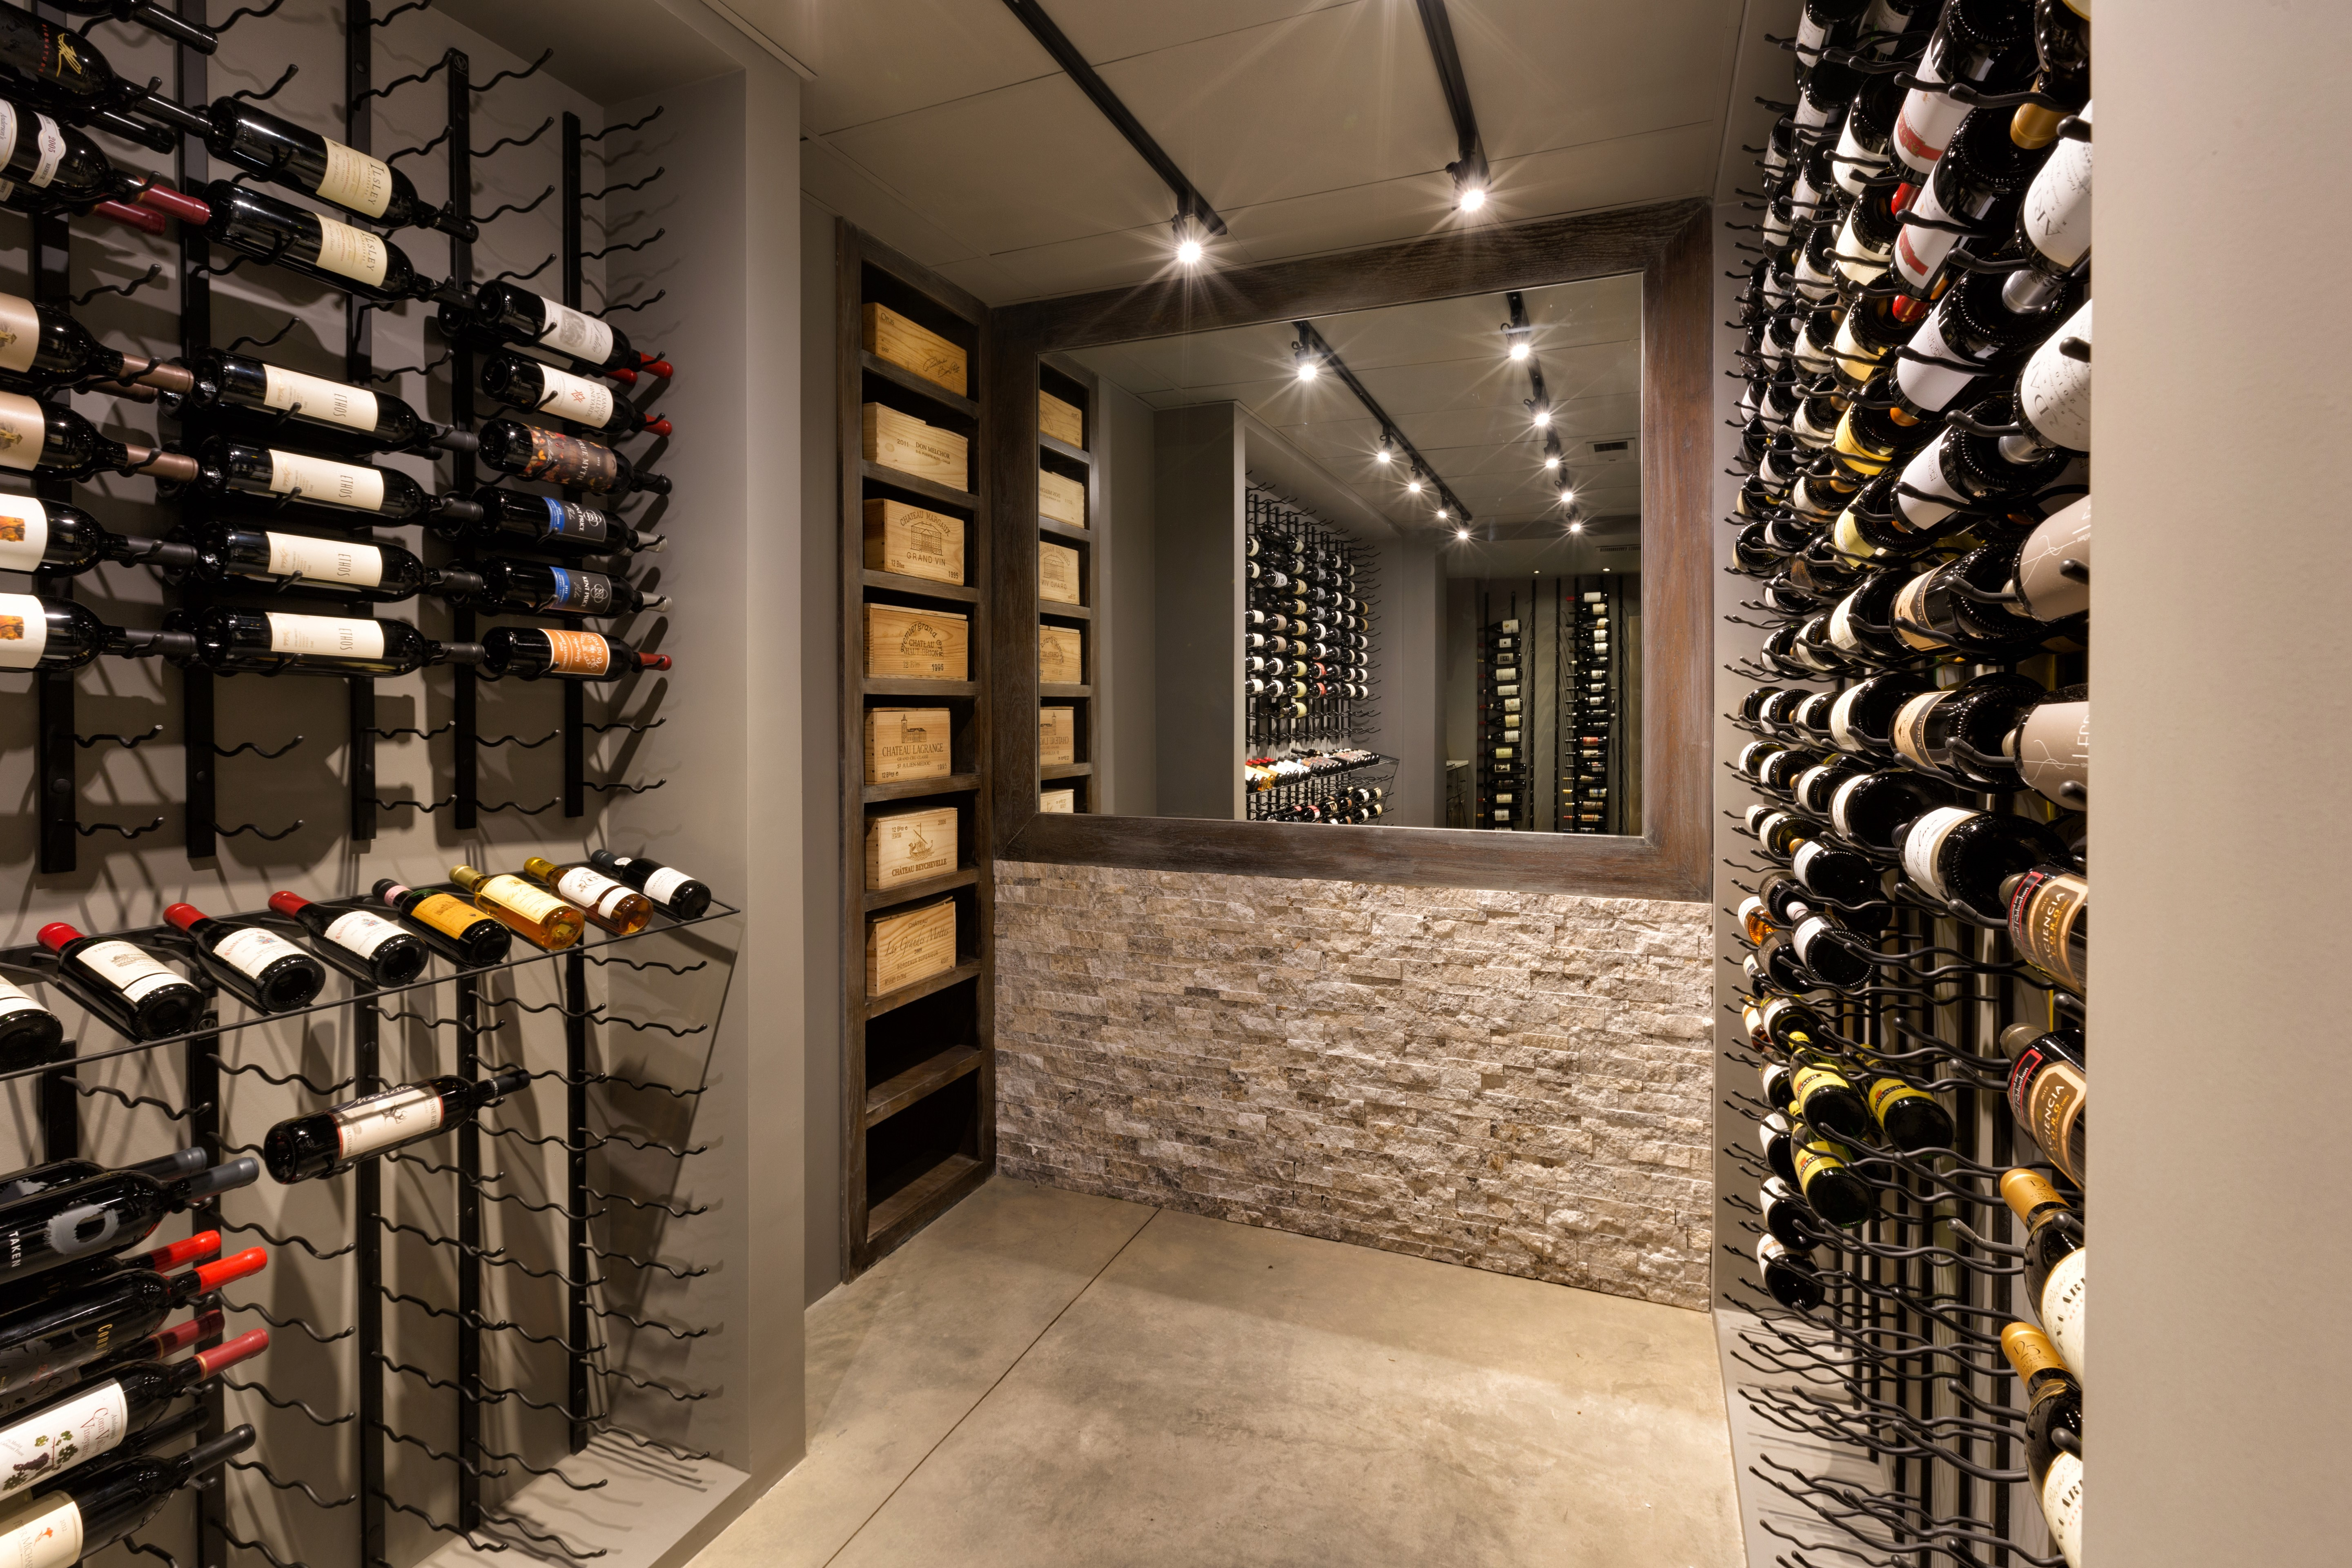 Charming Before And After Wine Cellar Transformation: A Design Connection, Inc.  Featured Project